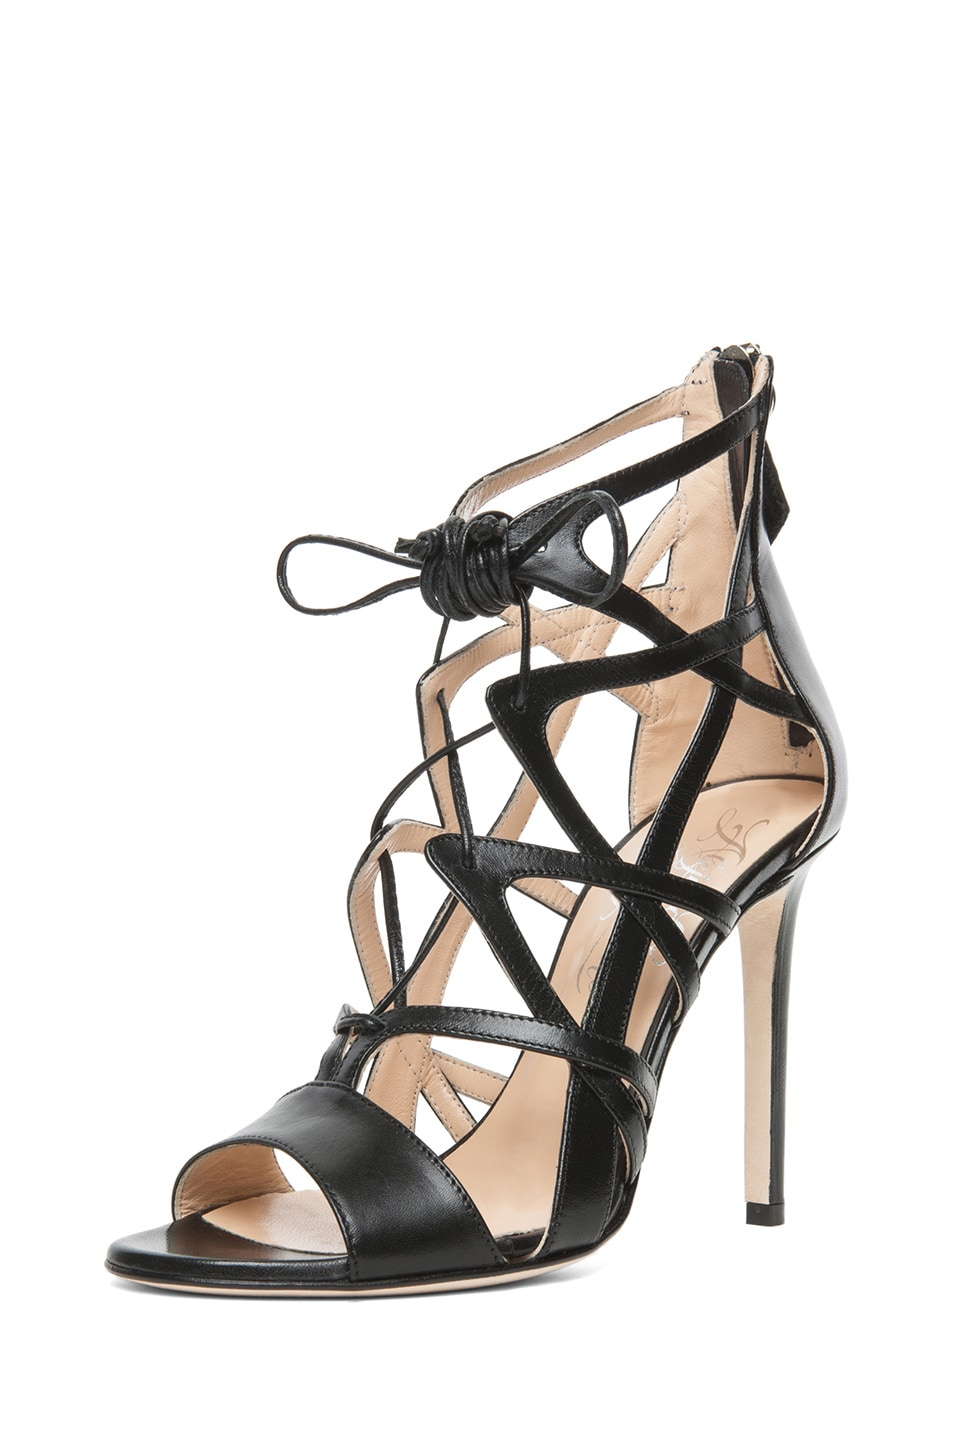 Image 2 of Alejandro Ingelmo Boomerang Calfskin Leather Lace Up Sandal in Black